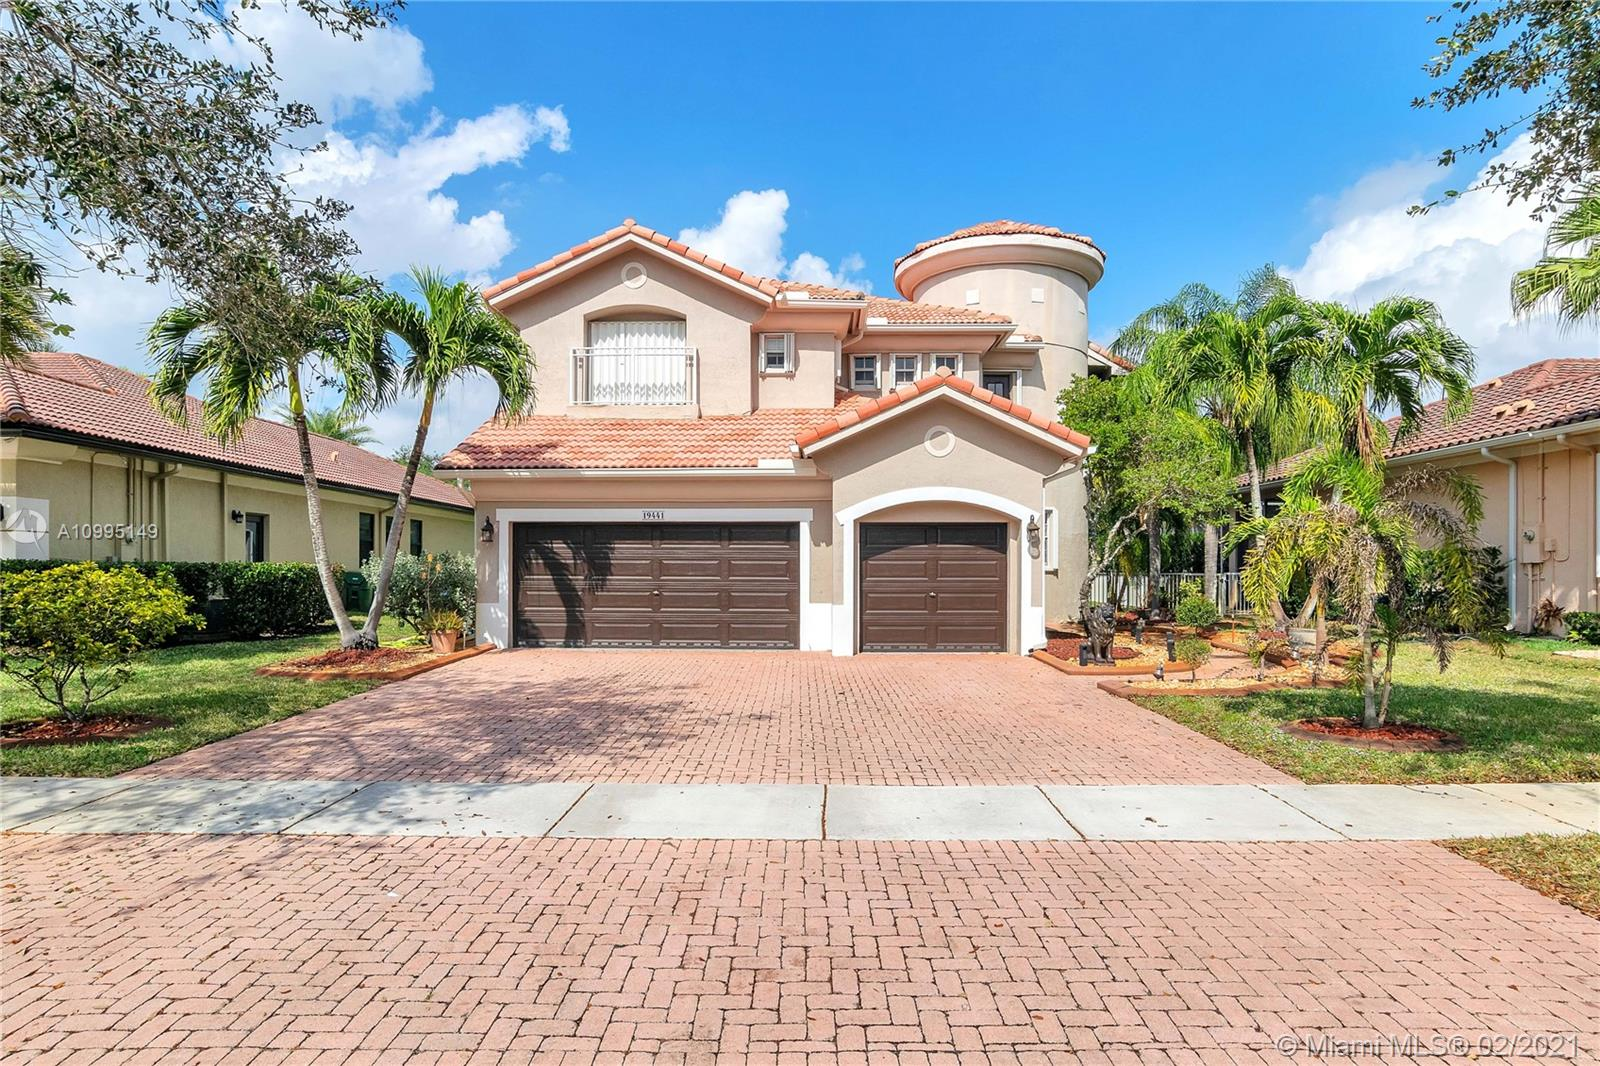 Stunning home@Sunset Lakes exclusive community to the West of Miramar Parkway. Over 12,674 sq ft lot, garden view. Your dream home is located just before a cul de sac, with almost 3,000 sq ft under a/c,  4 beds 3.5 baths, vaulted high ceilings, spiral staircase, ceramic & wood floors, accordion shutters, security system & lighting, 2 master bedrooms (1st floor with private entrance) original master on the  2nd-floor, kitchen with granite countertops, eat-in area, stainless steel appliances, pool + garden. The community offers an awesome clubhouse 18600 Sunrise Ave. Includes room for events, tennis, basketball, gym, pool, playground. $219.00 p/m.  No HOA pre-approval needed. By appointment-only/Listing Agent to open door. AC  + water heater is 1-2 yrs old.